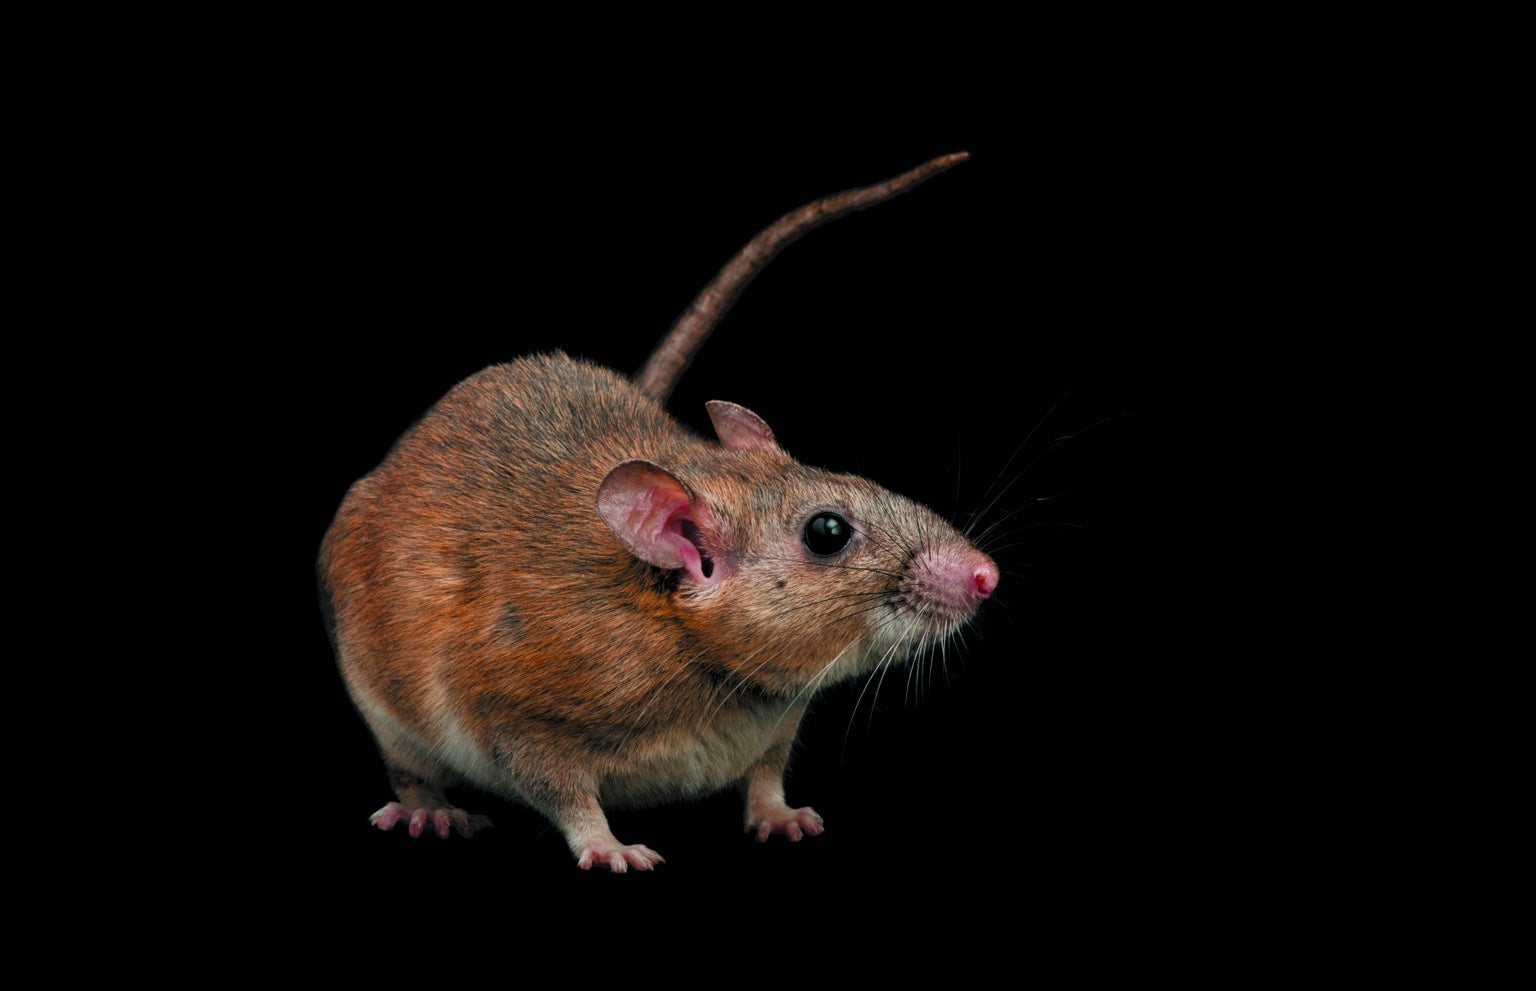 Can We Save the Woodrat without Slaughtering Cats?